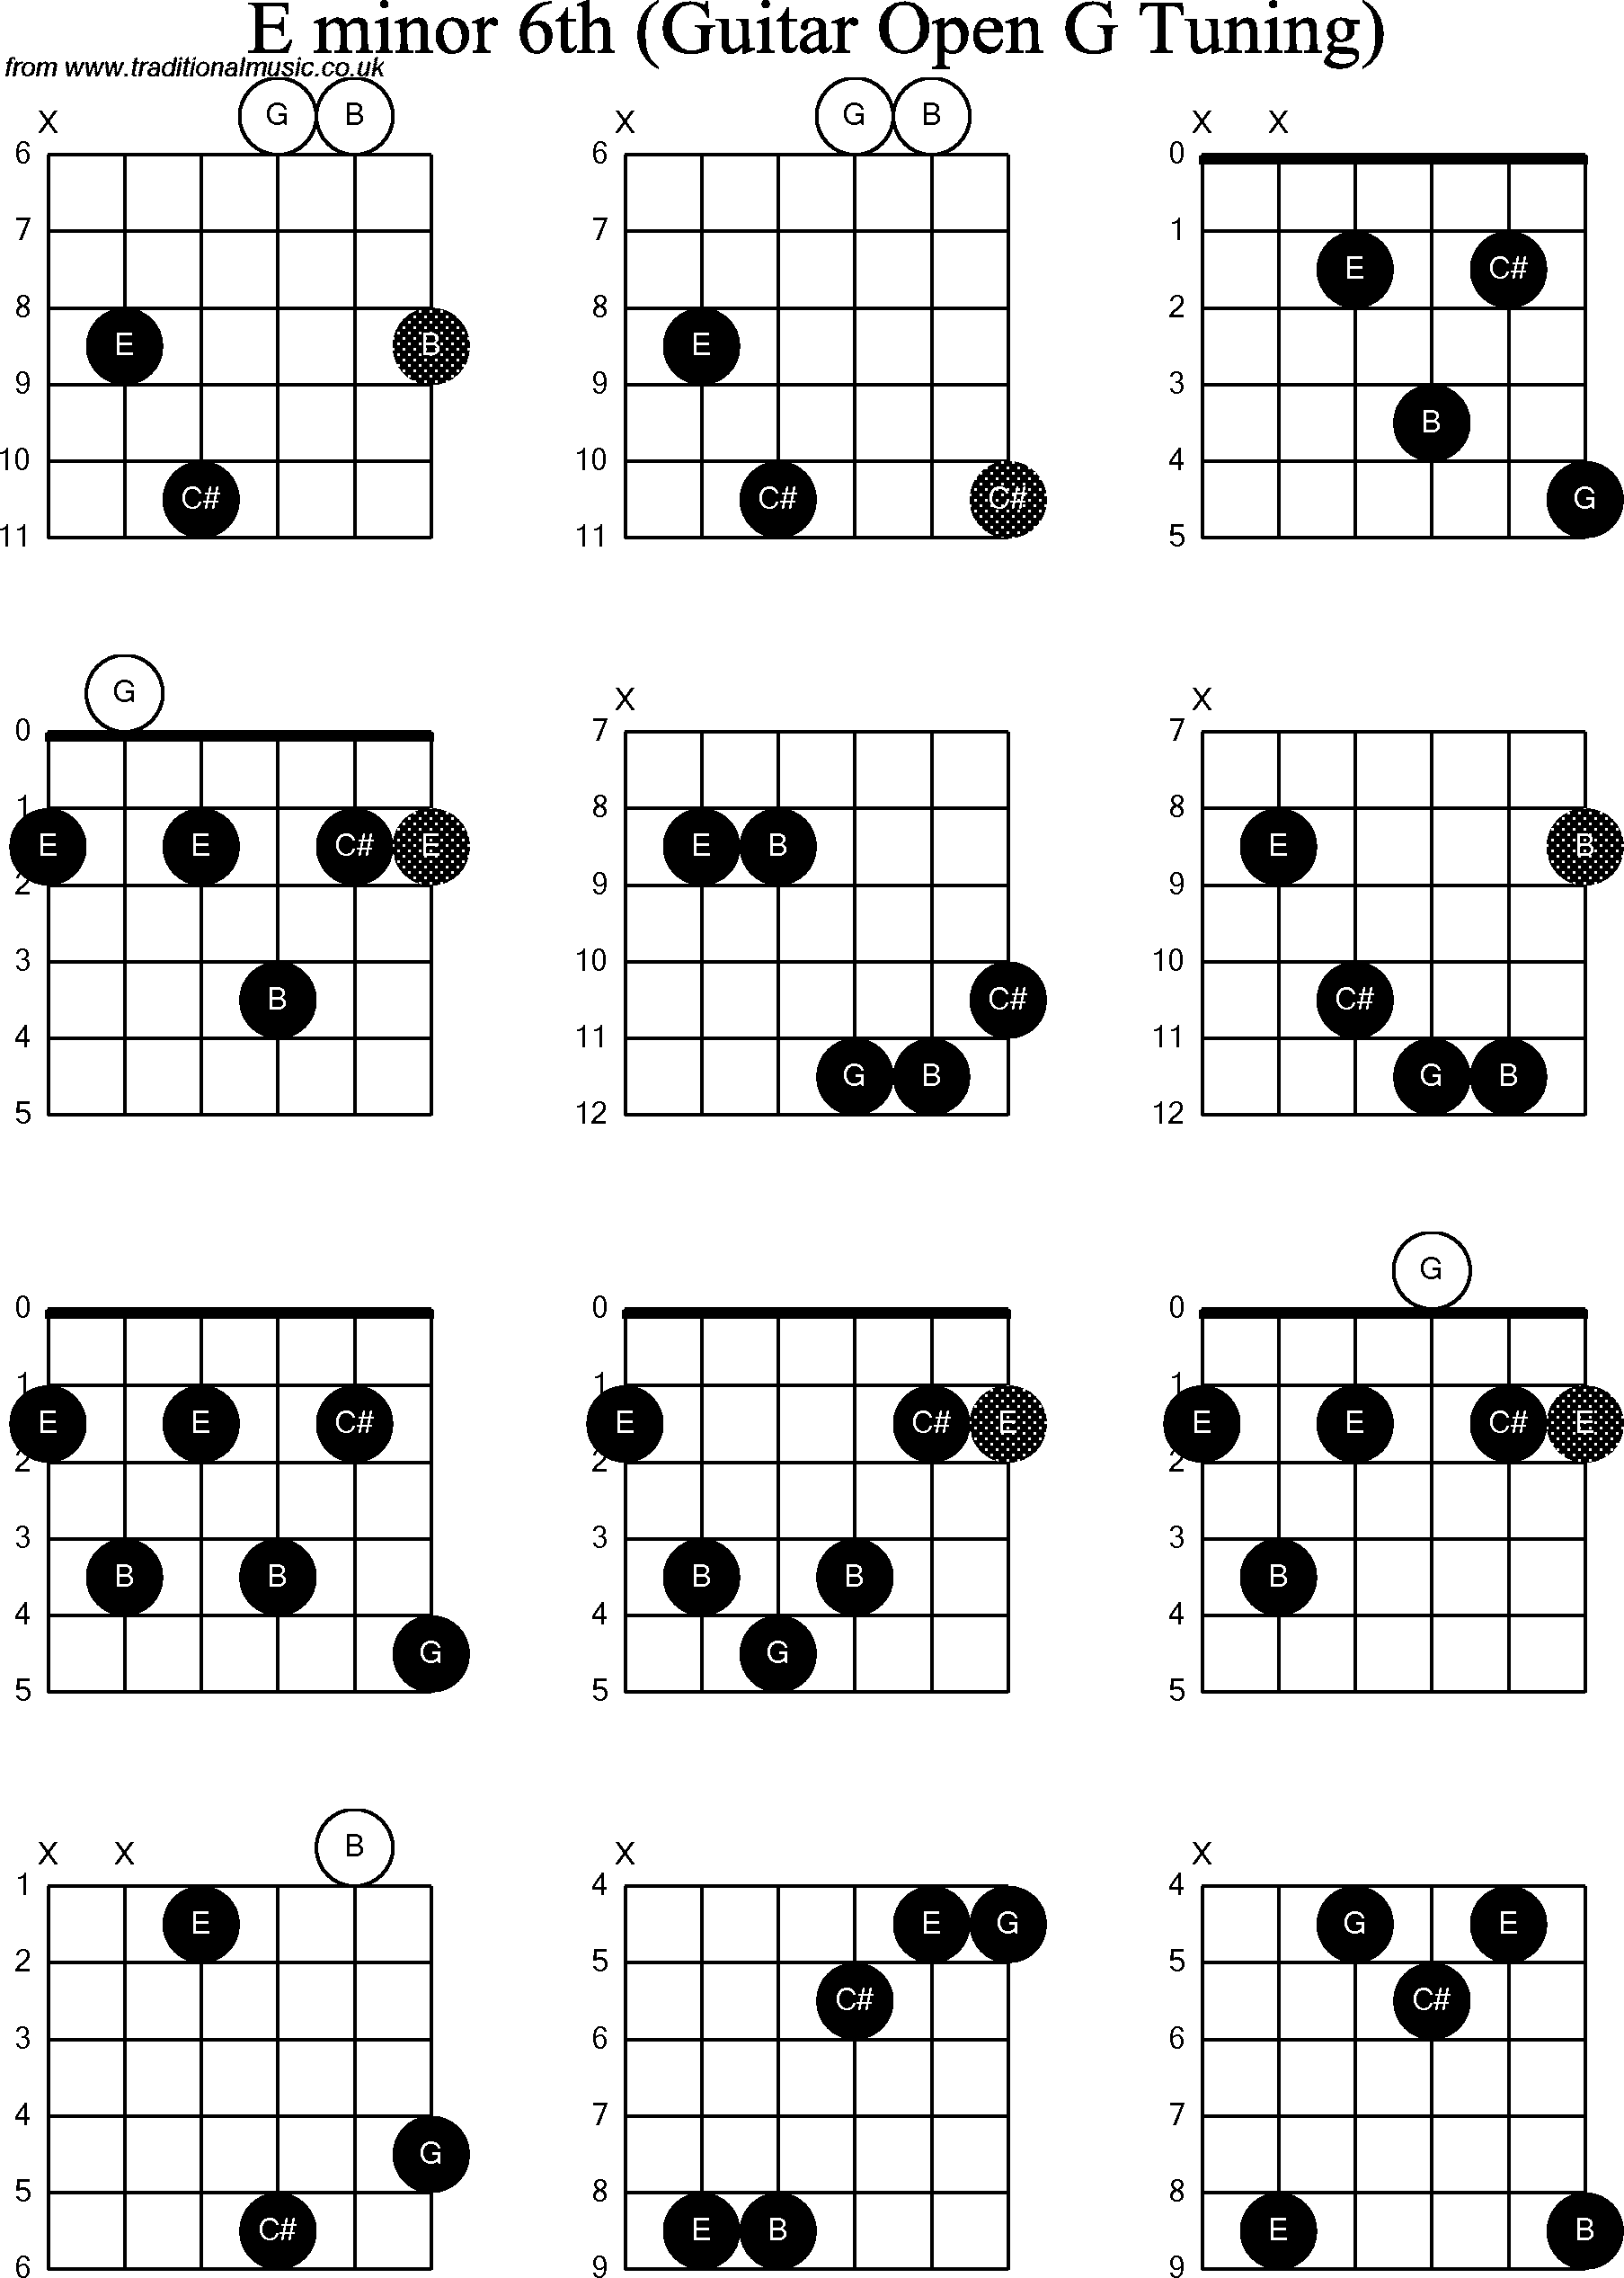 chord diagrams for  dobro e minor6th